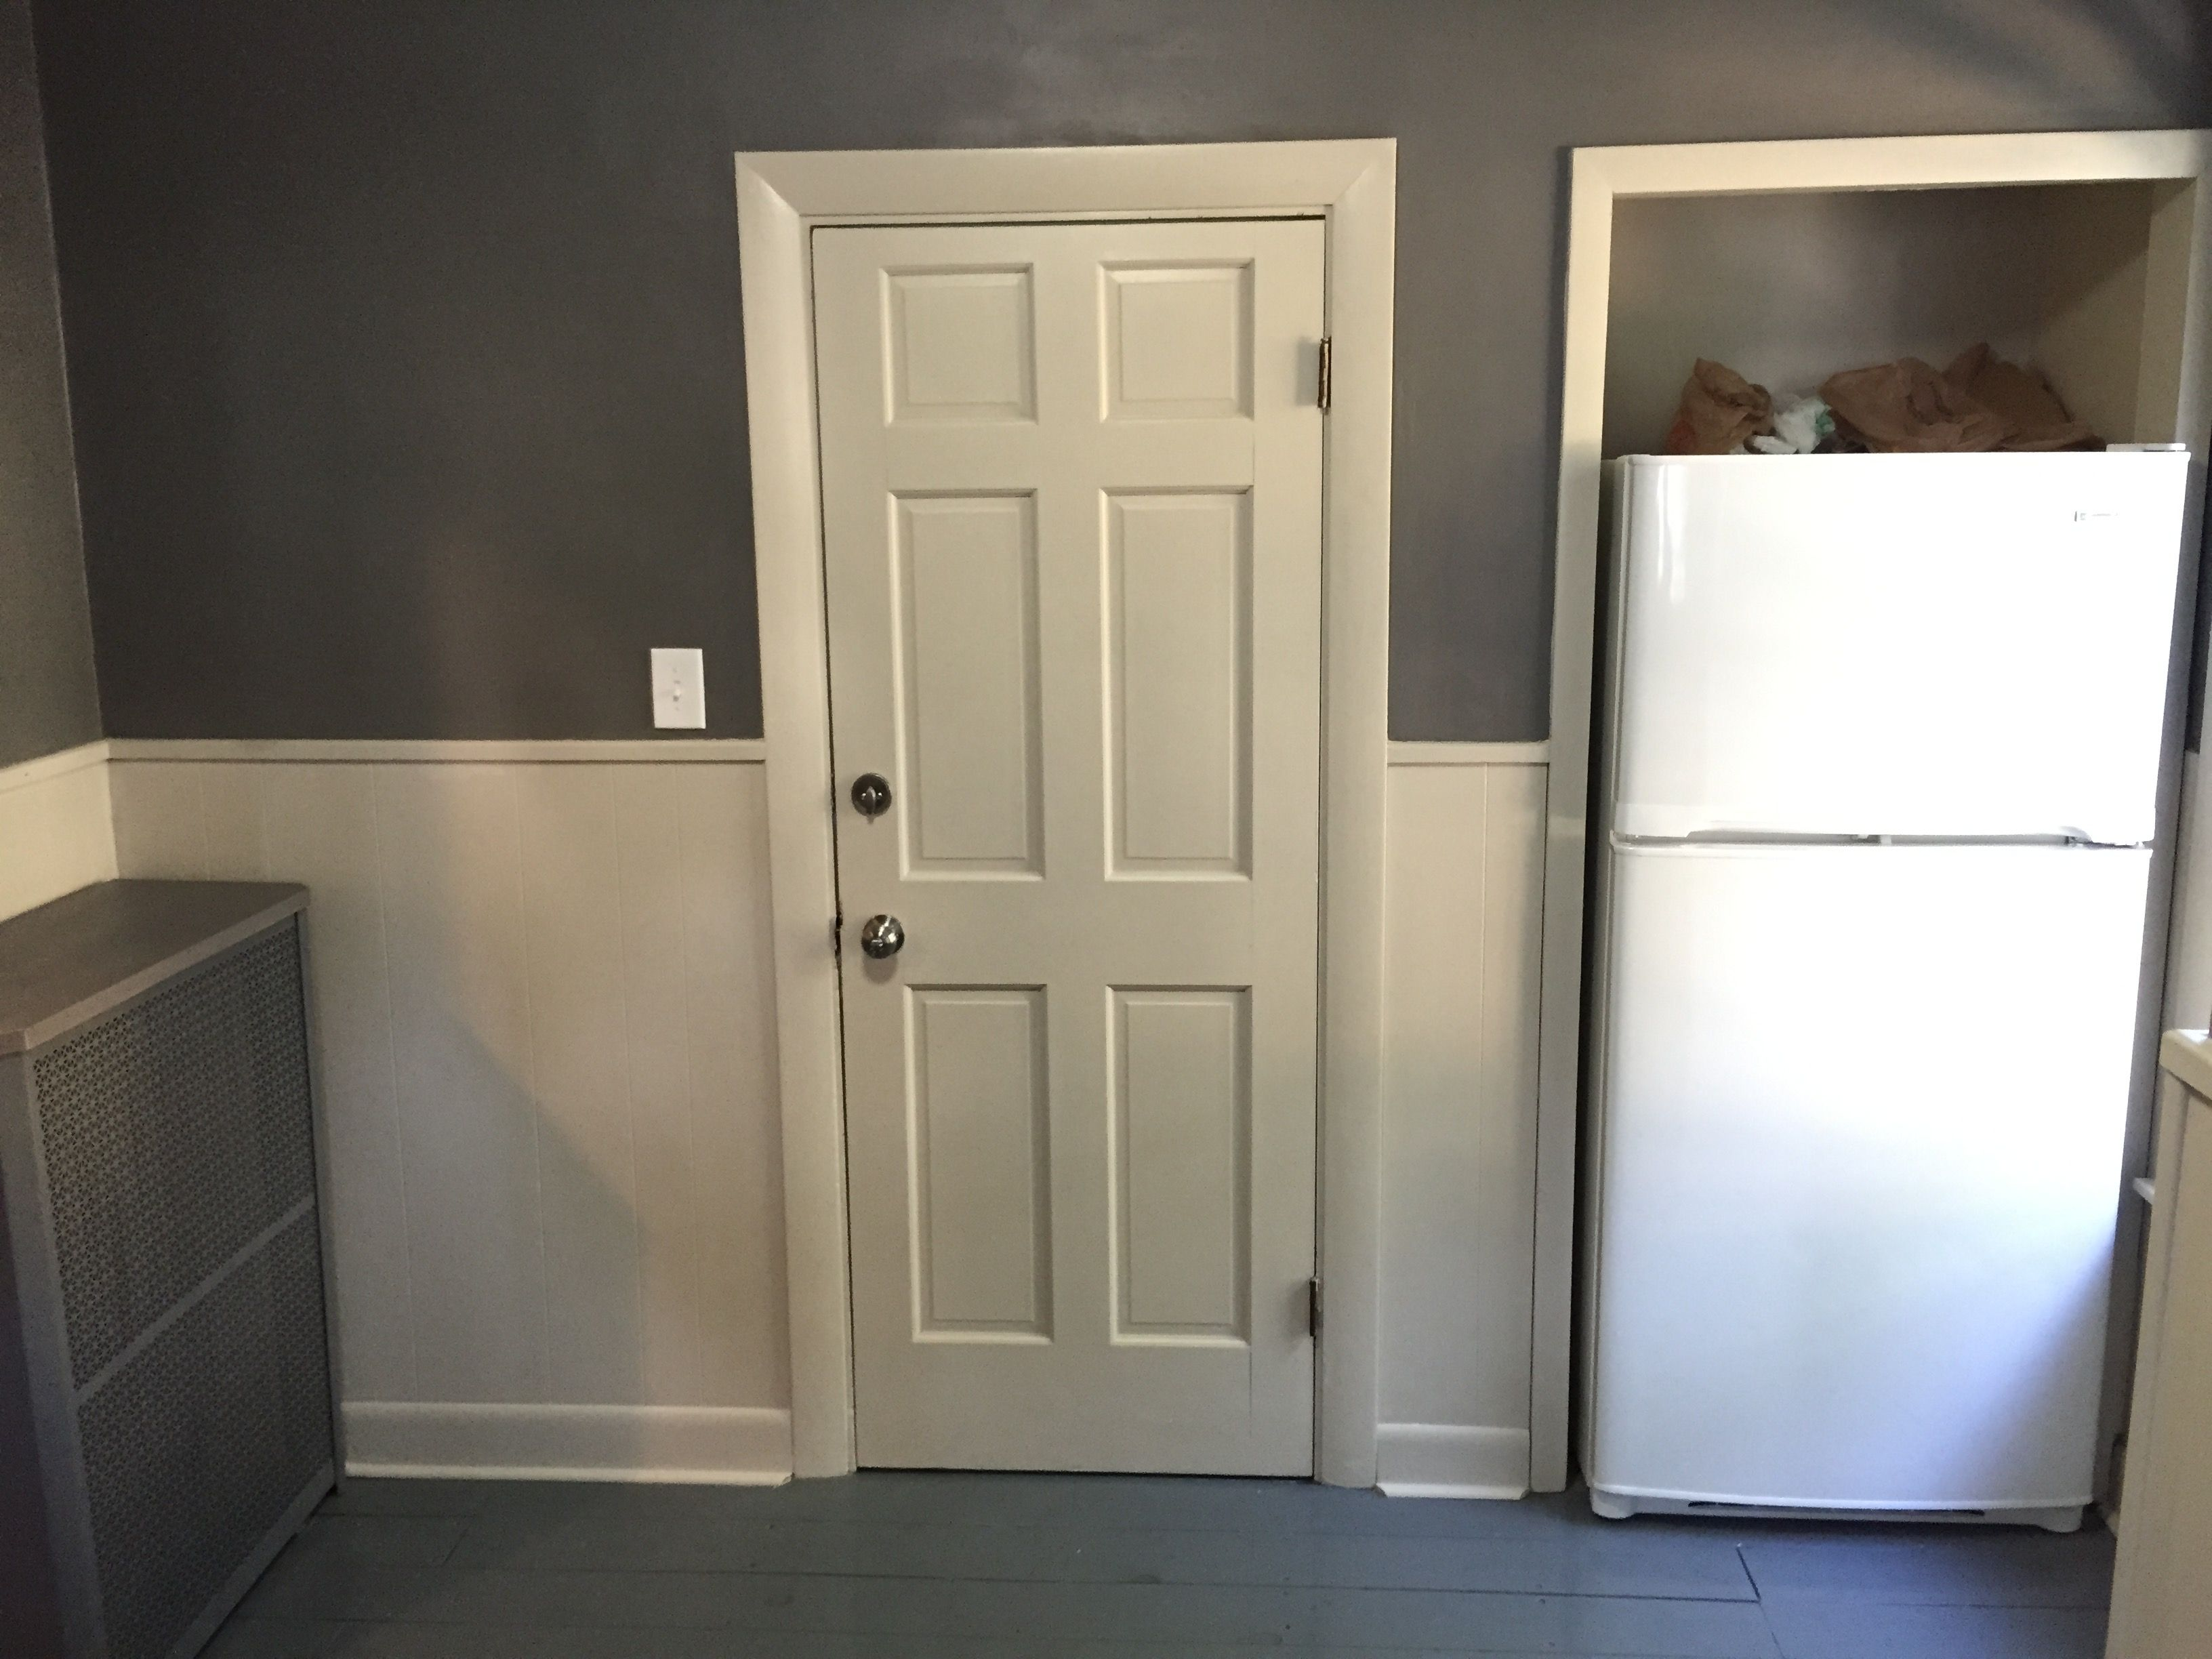 fridge moved into closet to open up room painted wood paneling on